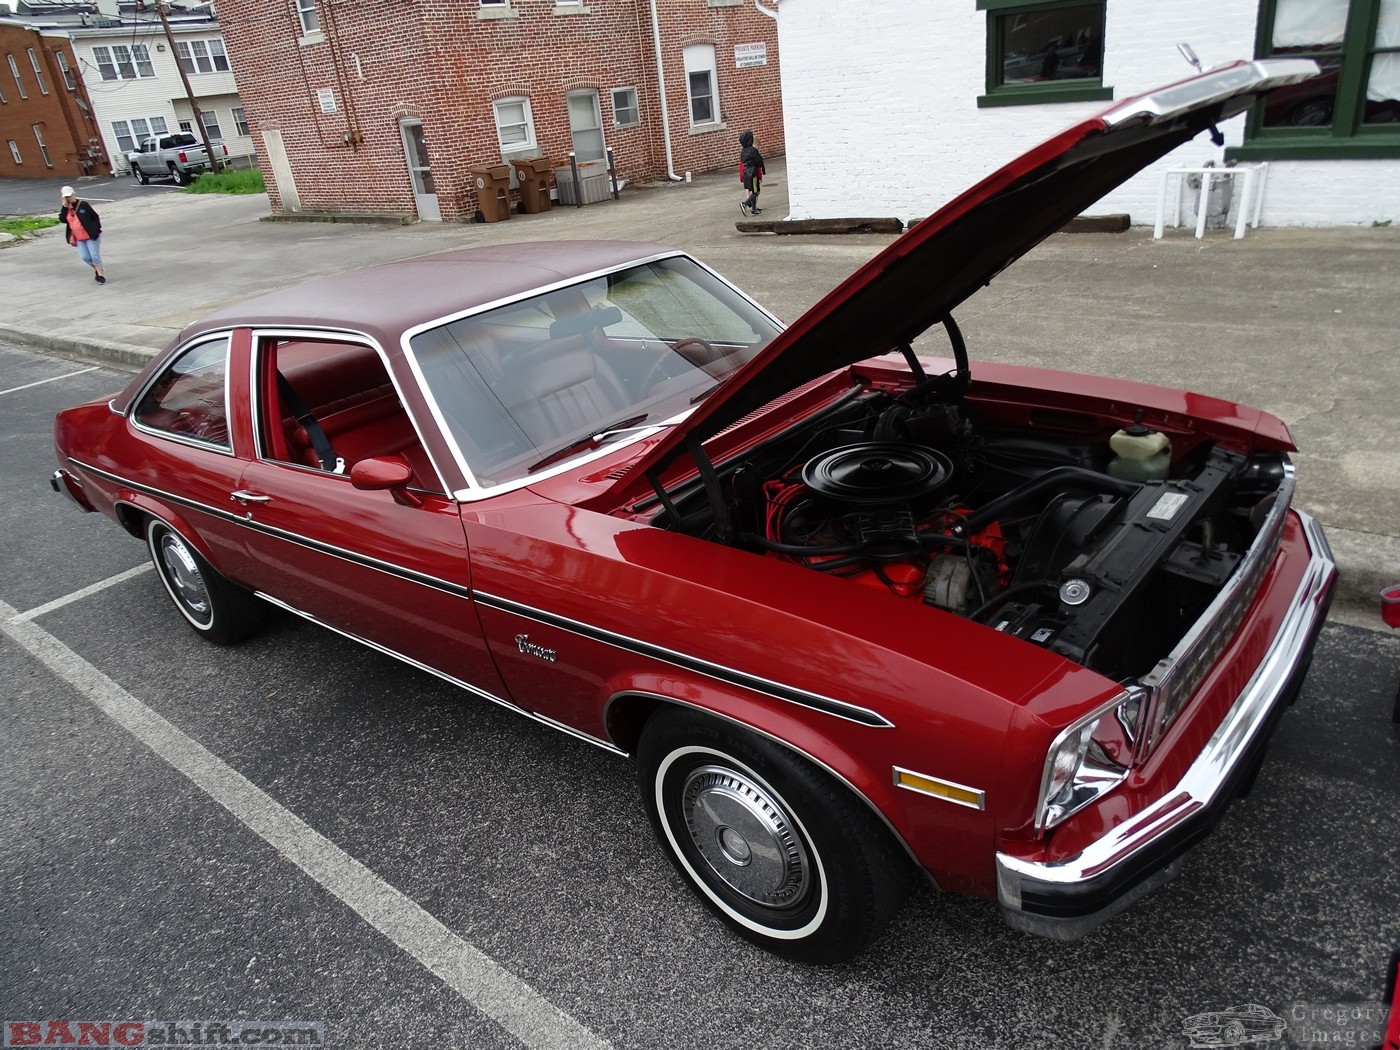 2019 Somernites Cruise Coverage: Cruisers, Bruisers, Hot Rods, and More From The 1970s to Today!